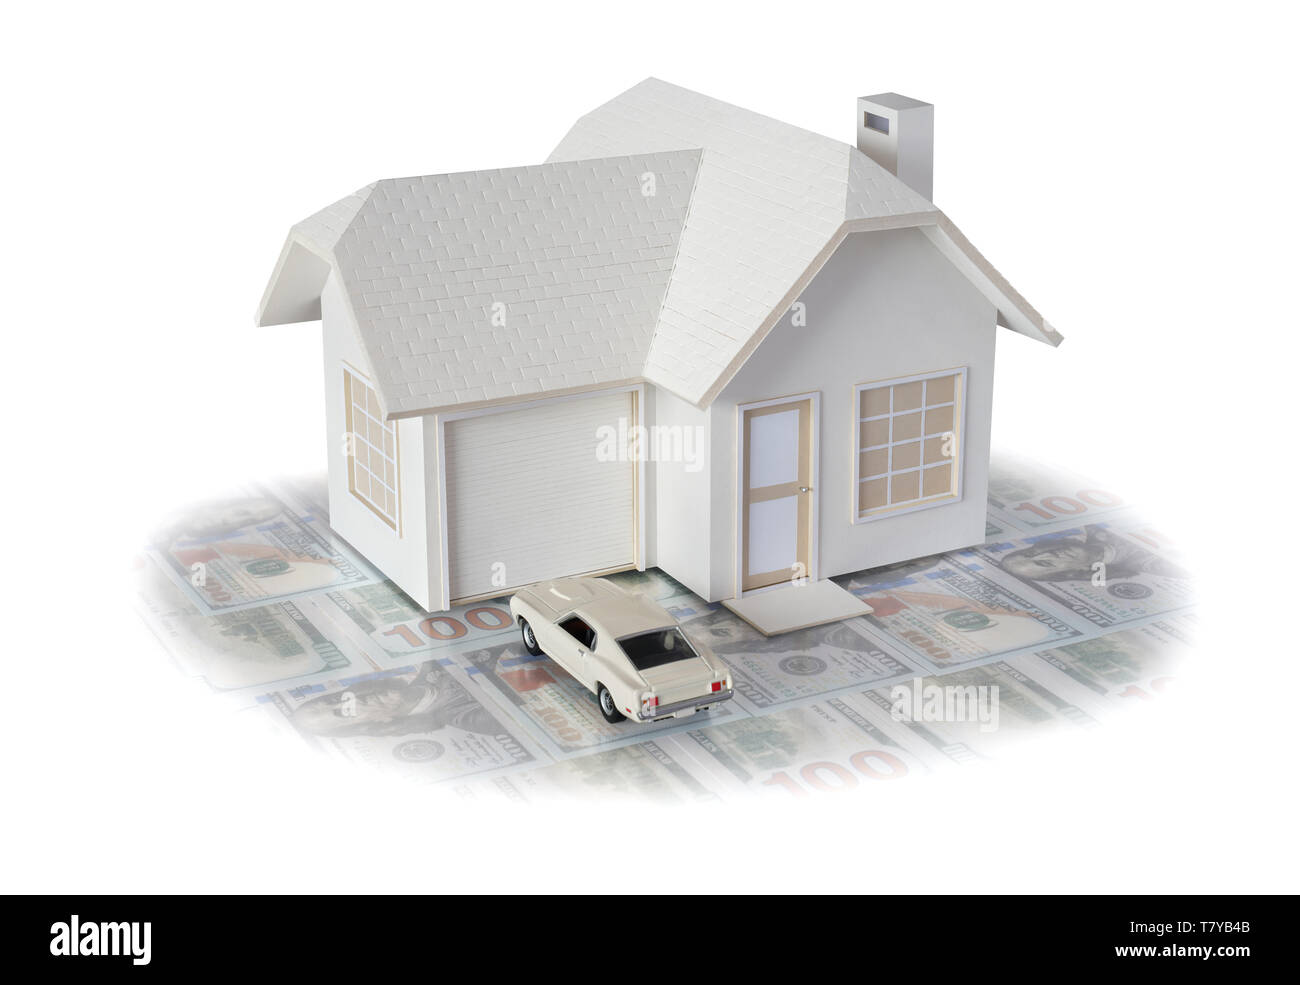 House miniature w/ car on U.S. dollar bills isolated in white background for real estate & construction concepts. House miniature made by contributor Stock Photo